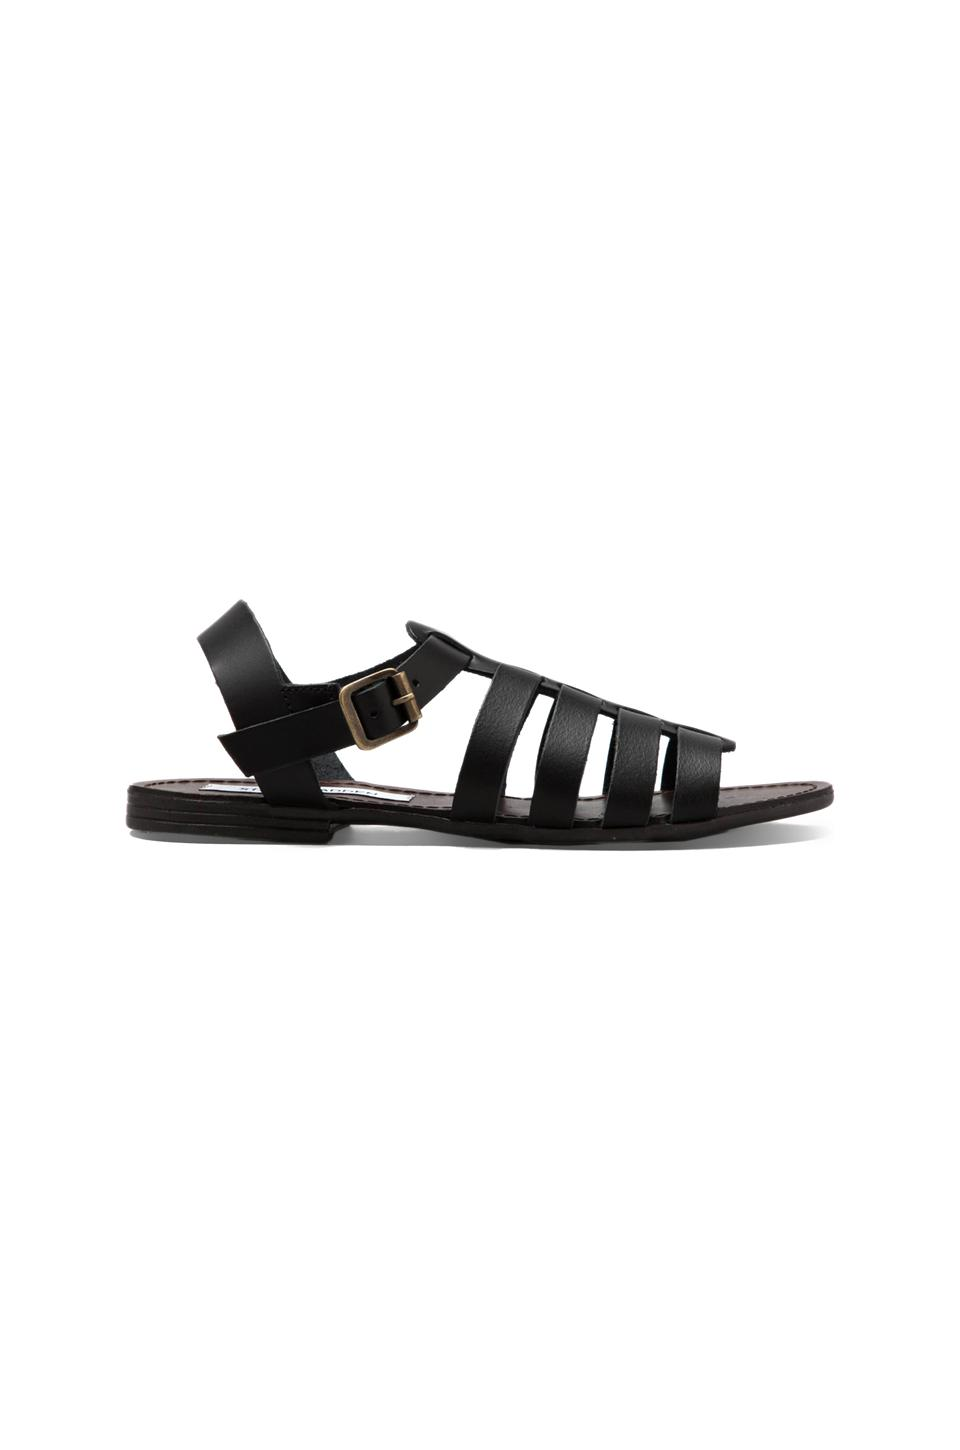 Steve Madden Alter Sandal in Black Leather